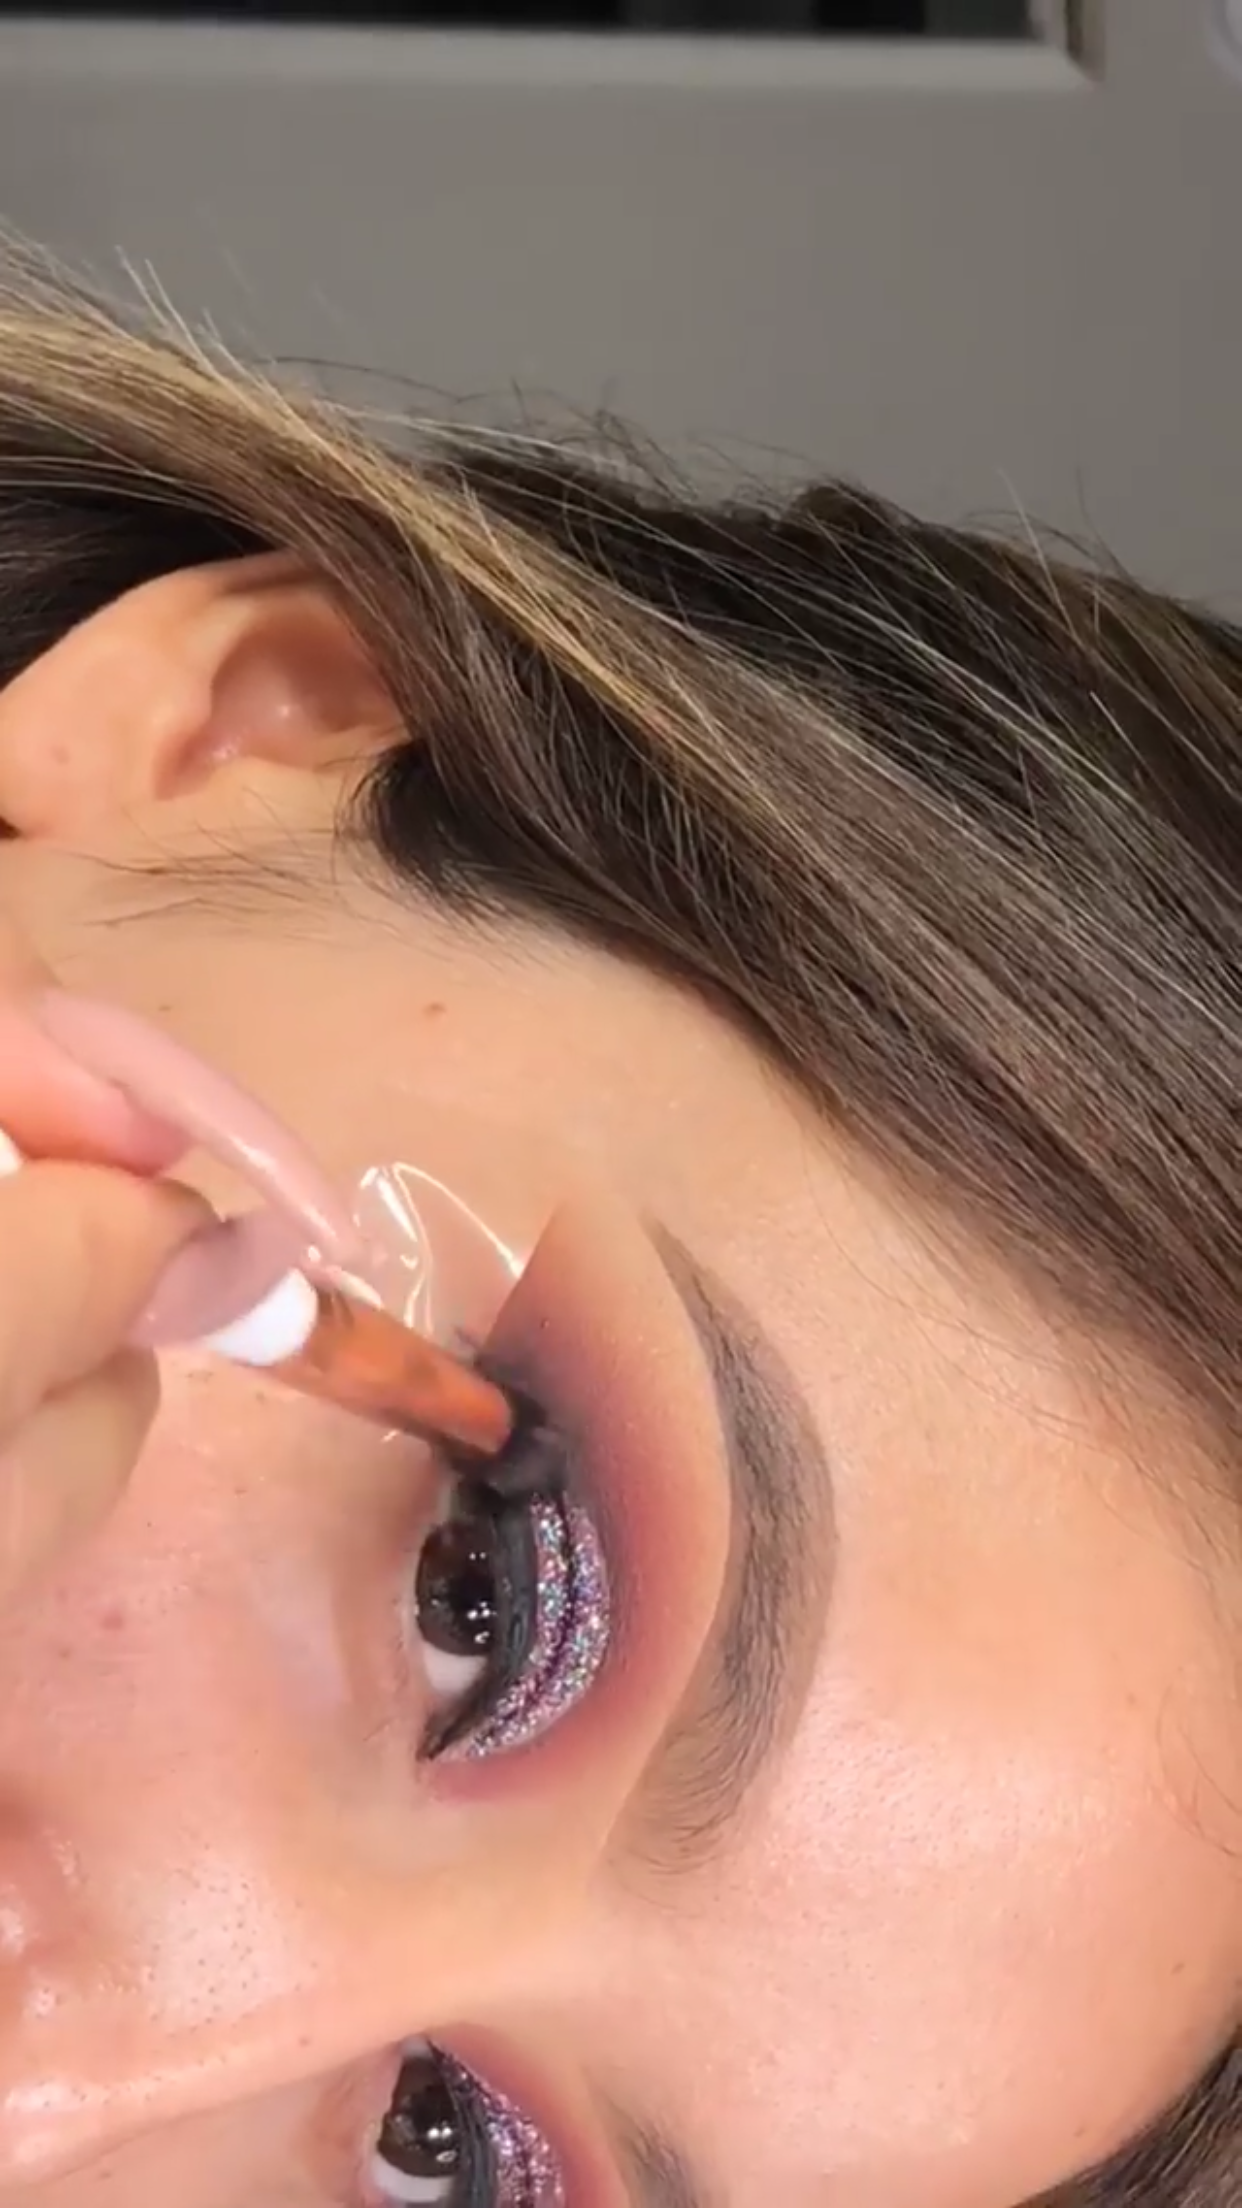 Nose piercing trends 2018  Pin by Marisol Meza on MakeUp  Pinterest  How to make and Makeup